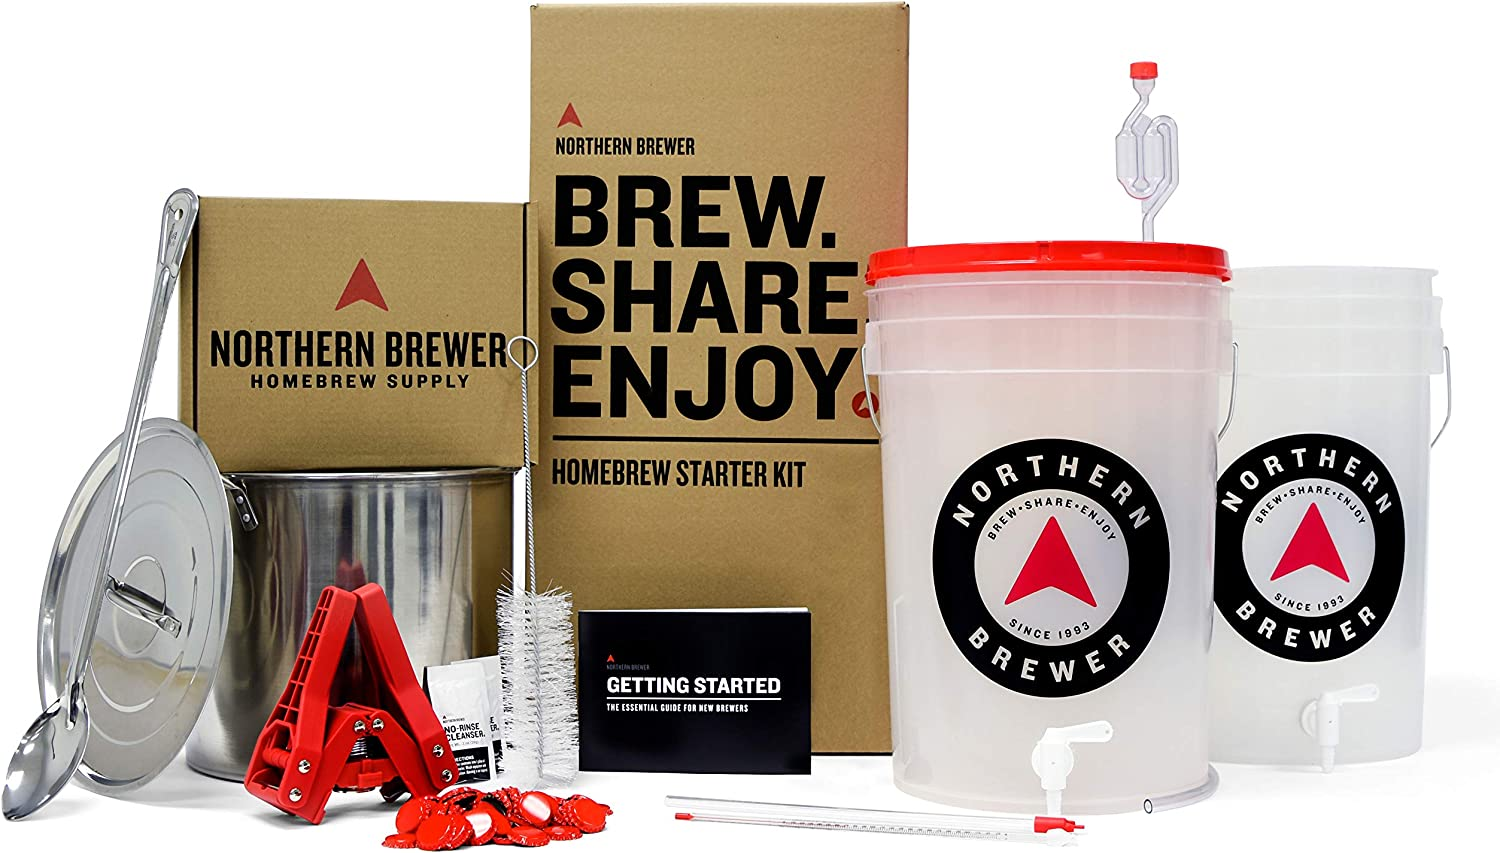 Northern Brewer Brew. Share. Enjoy. HomeBrewing Starter Set